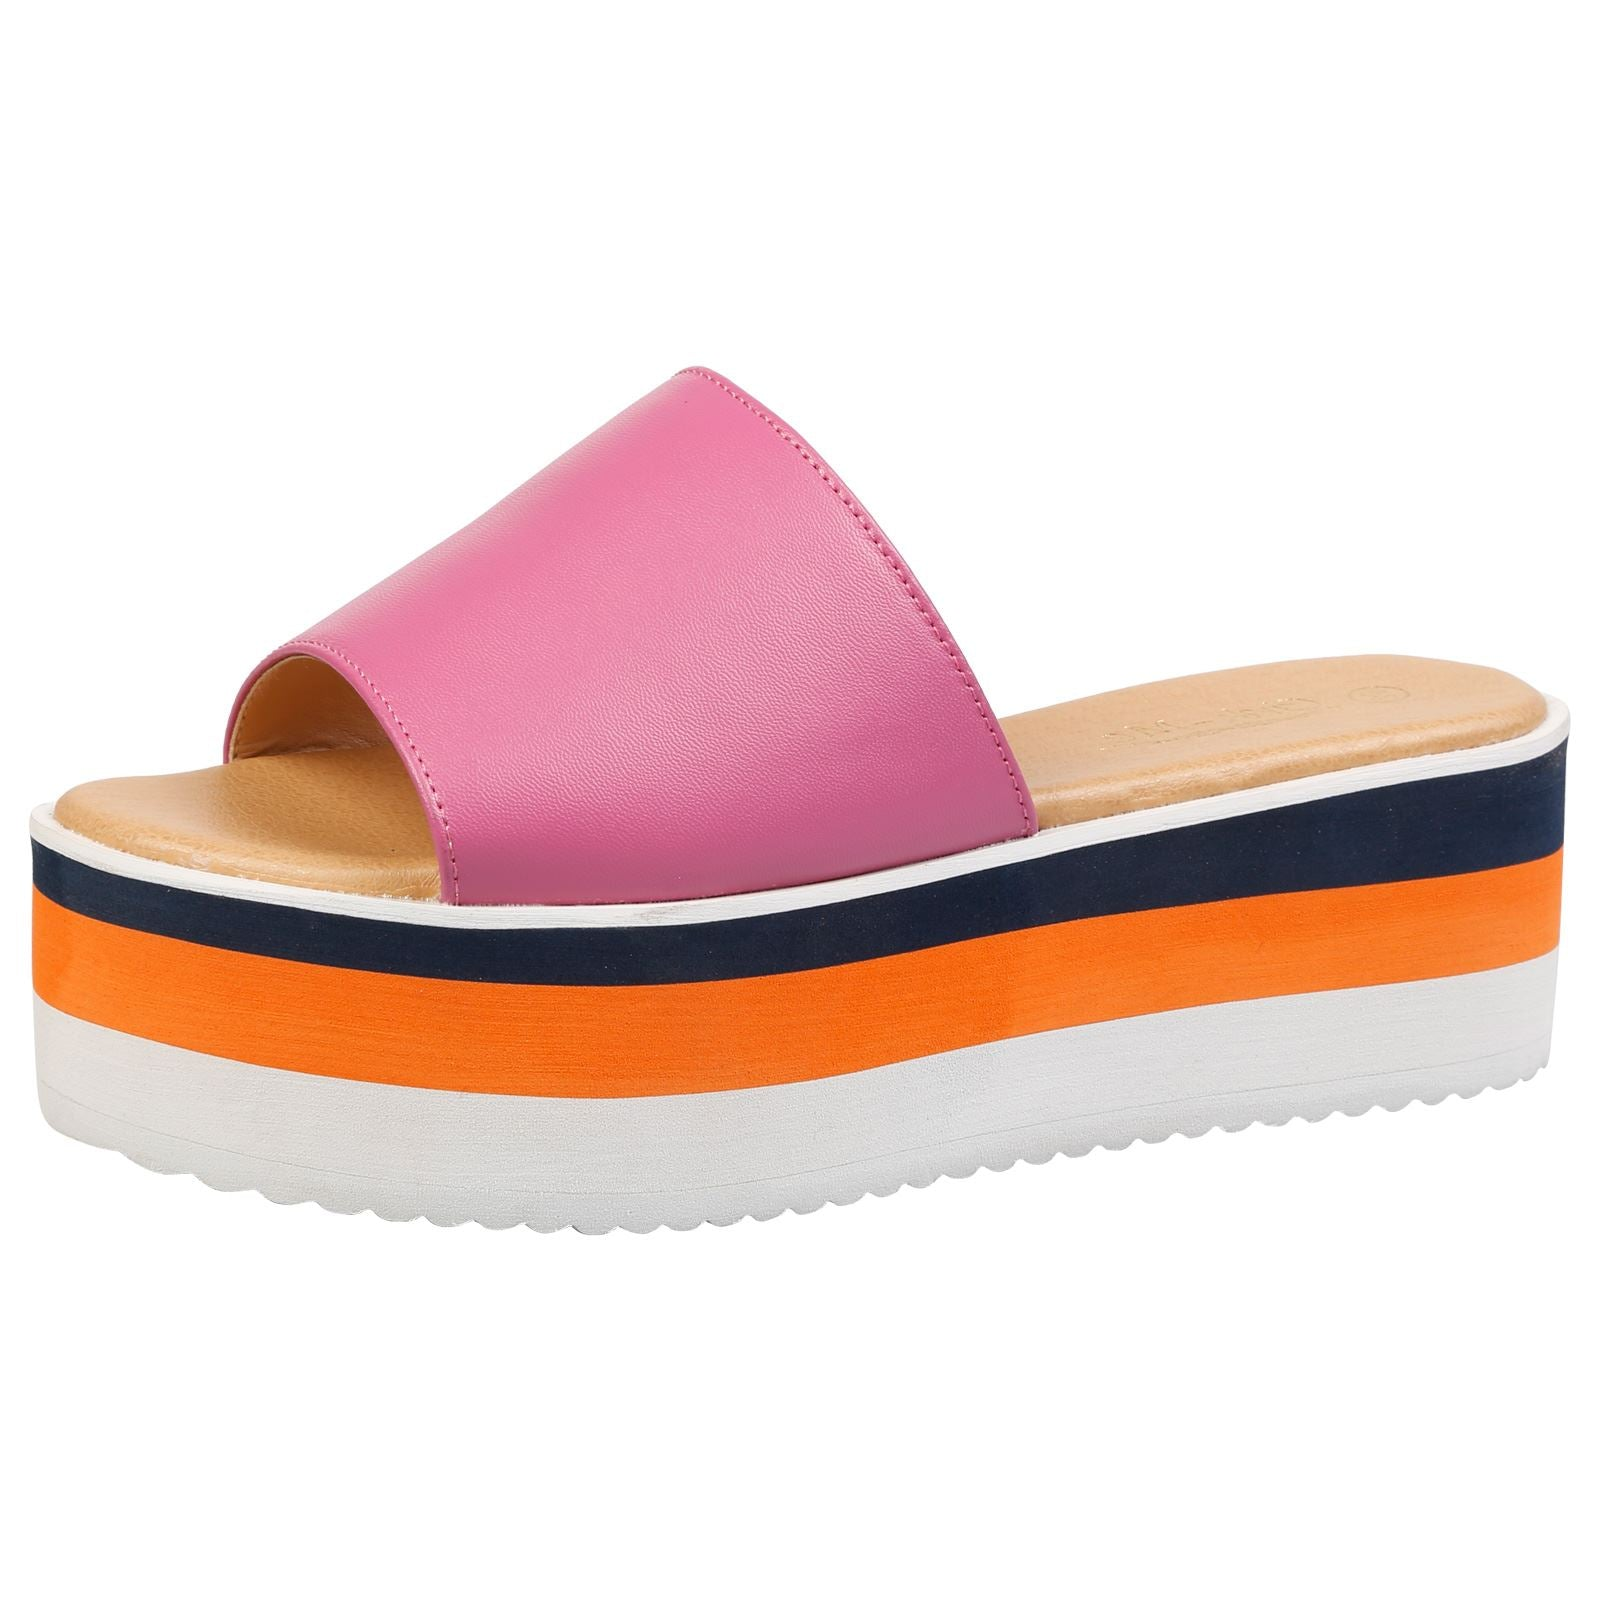 Alva Stripe Sole Flatform Sliders in Fuchsia Faux Leather